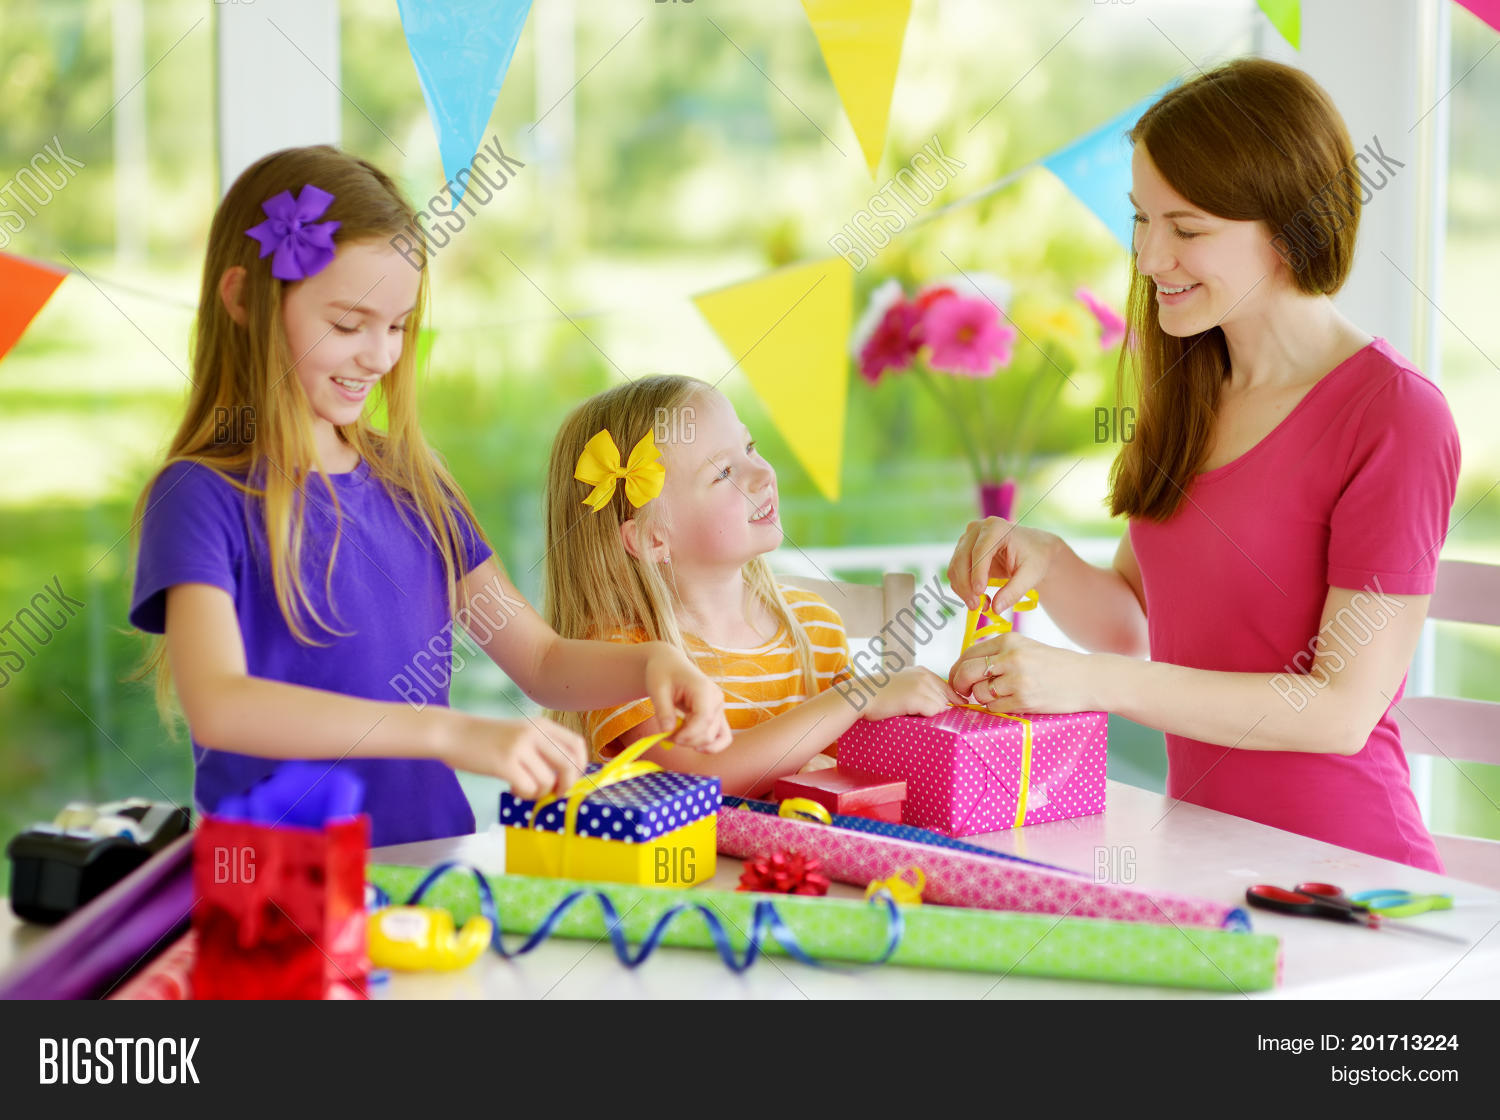 Two Cute Sisters And Their Young Mother Wrapping Gifts In Colorful Paper Family Of